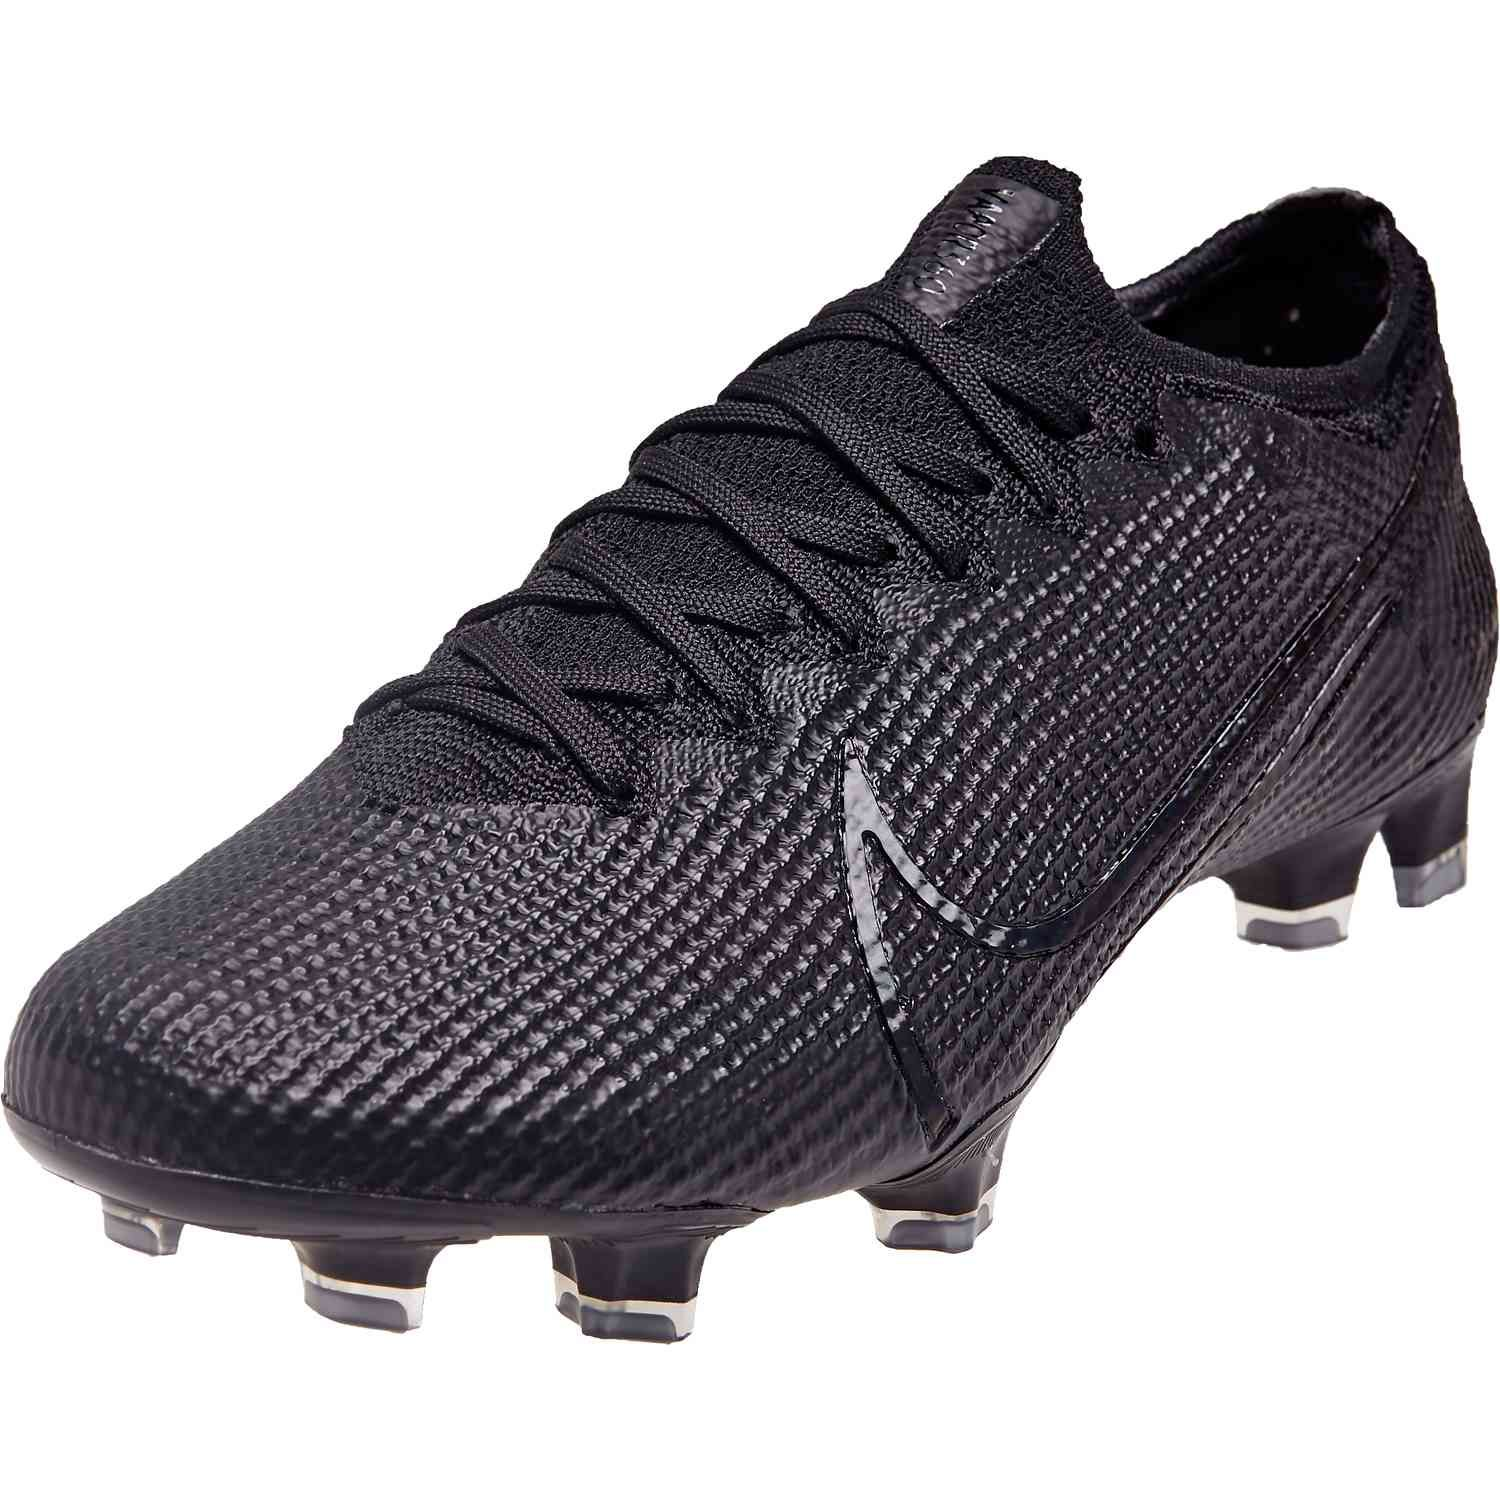 Nike Mercurial Superfly Vi Elite Sg Pro Ac Yellow Black Soft Ground Soccer Cleats For Kid S Women S And Men S U80soccer Com